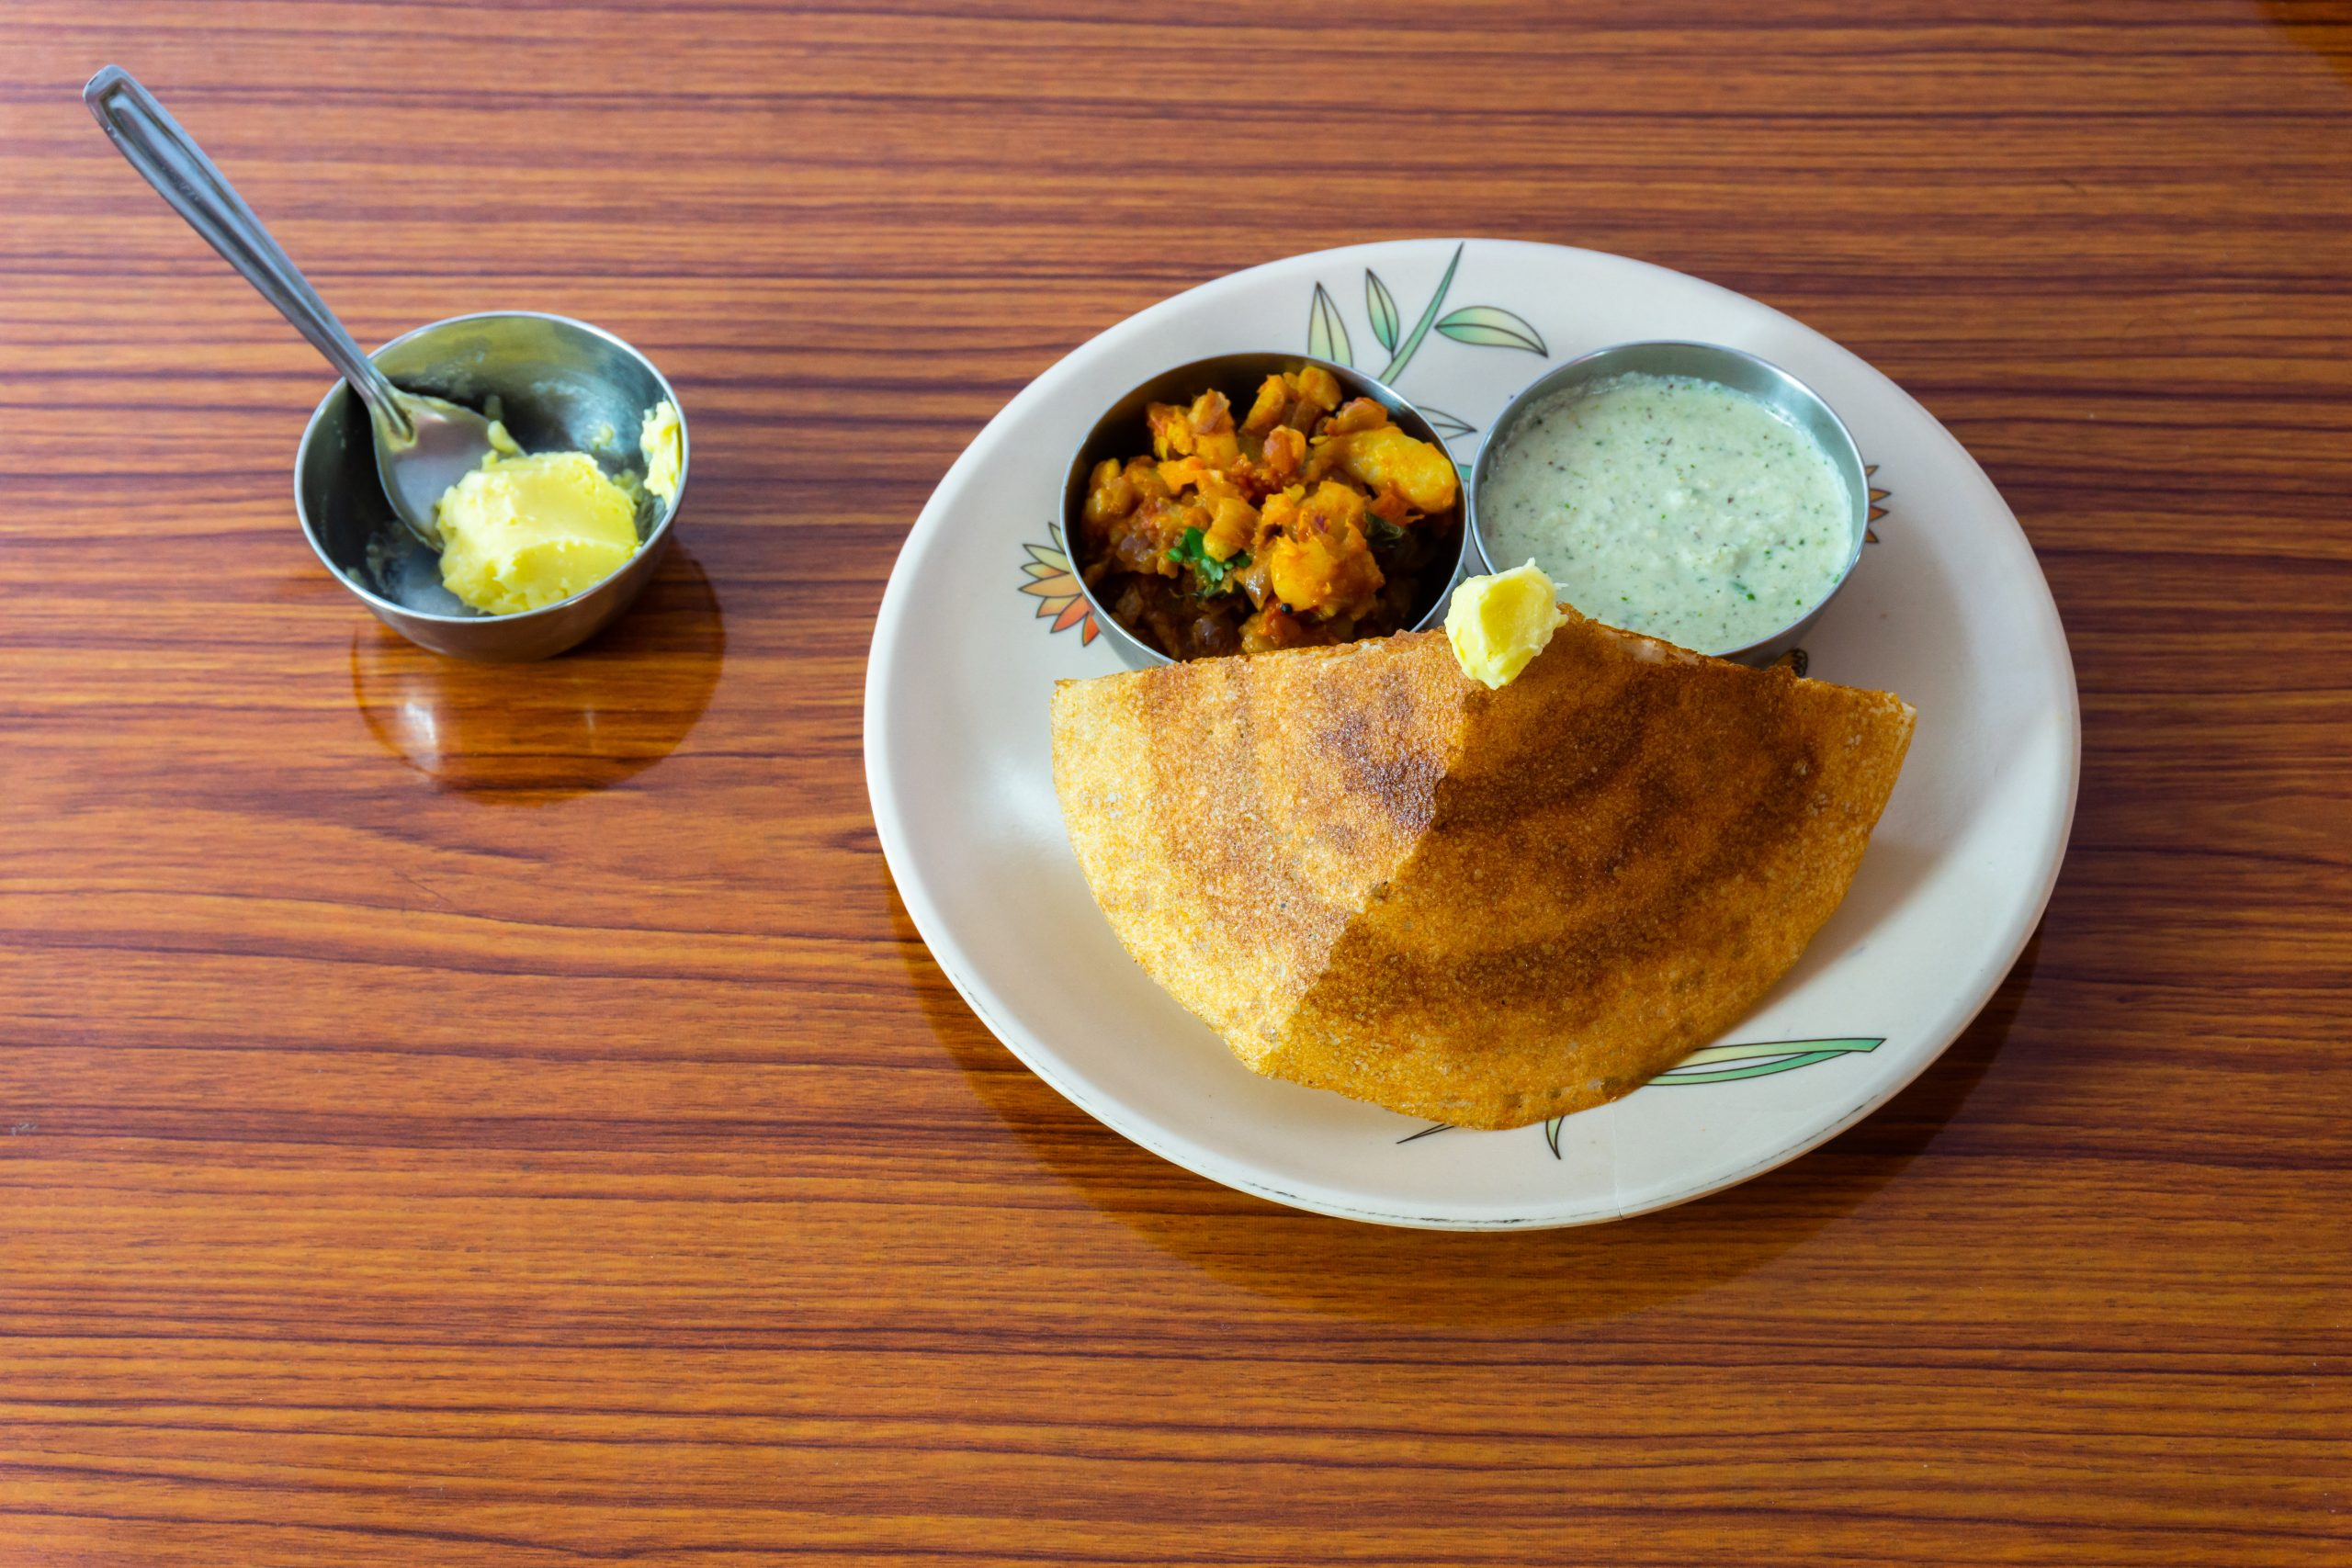 Masala dosa with sauce